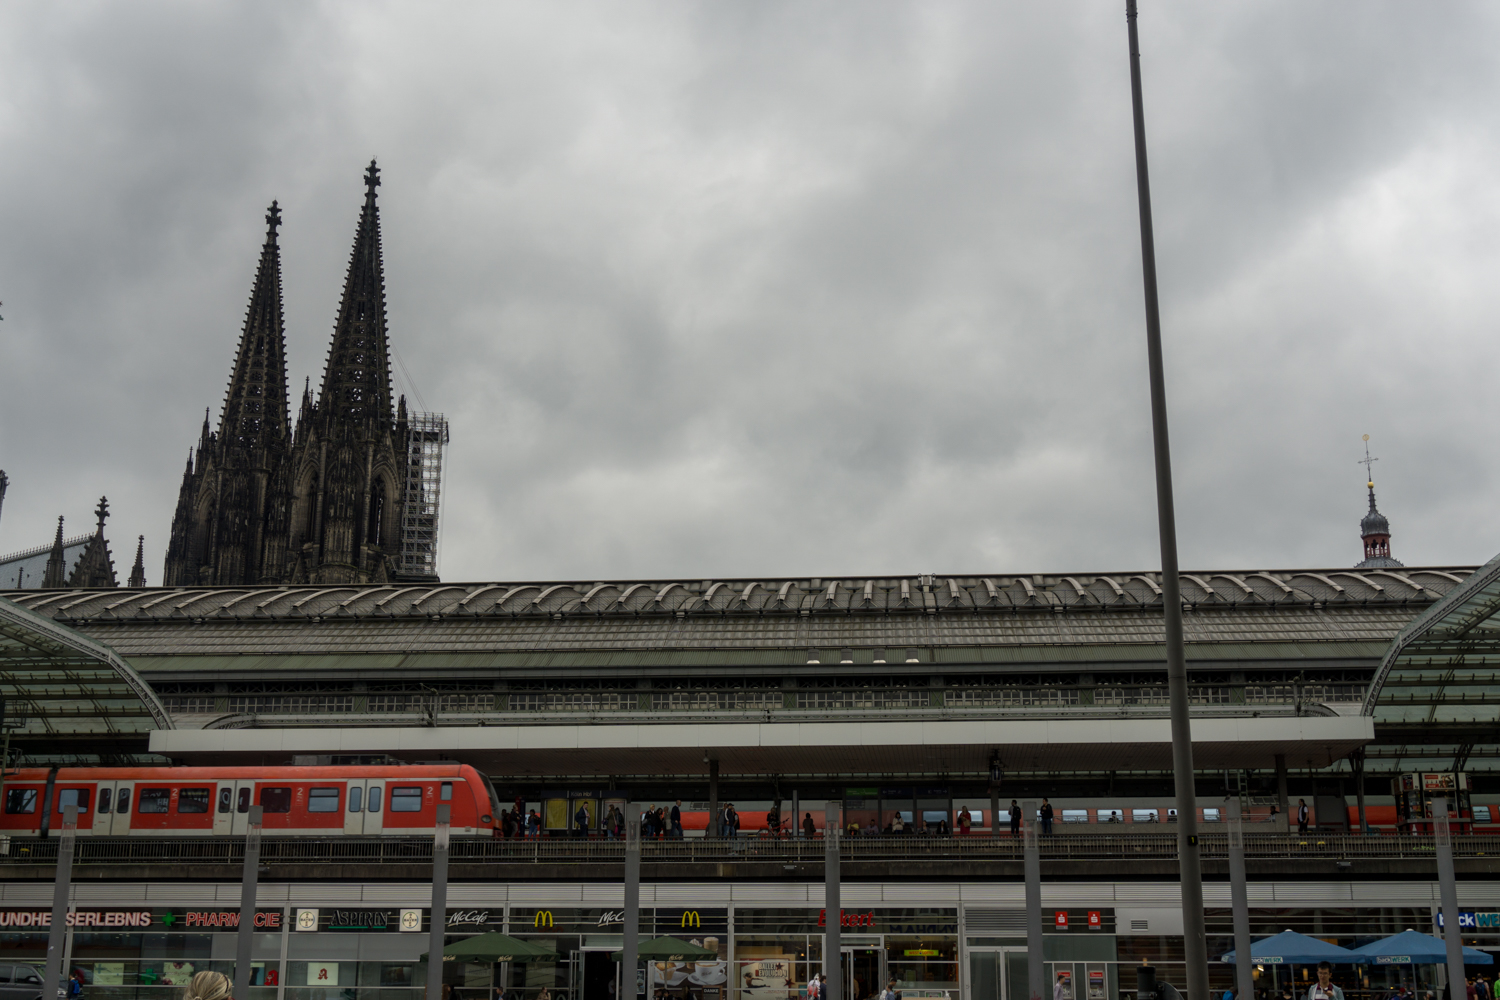 COLOGNE: The Dom and the central train station